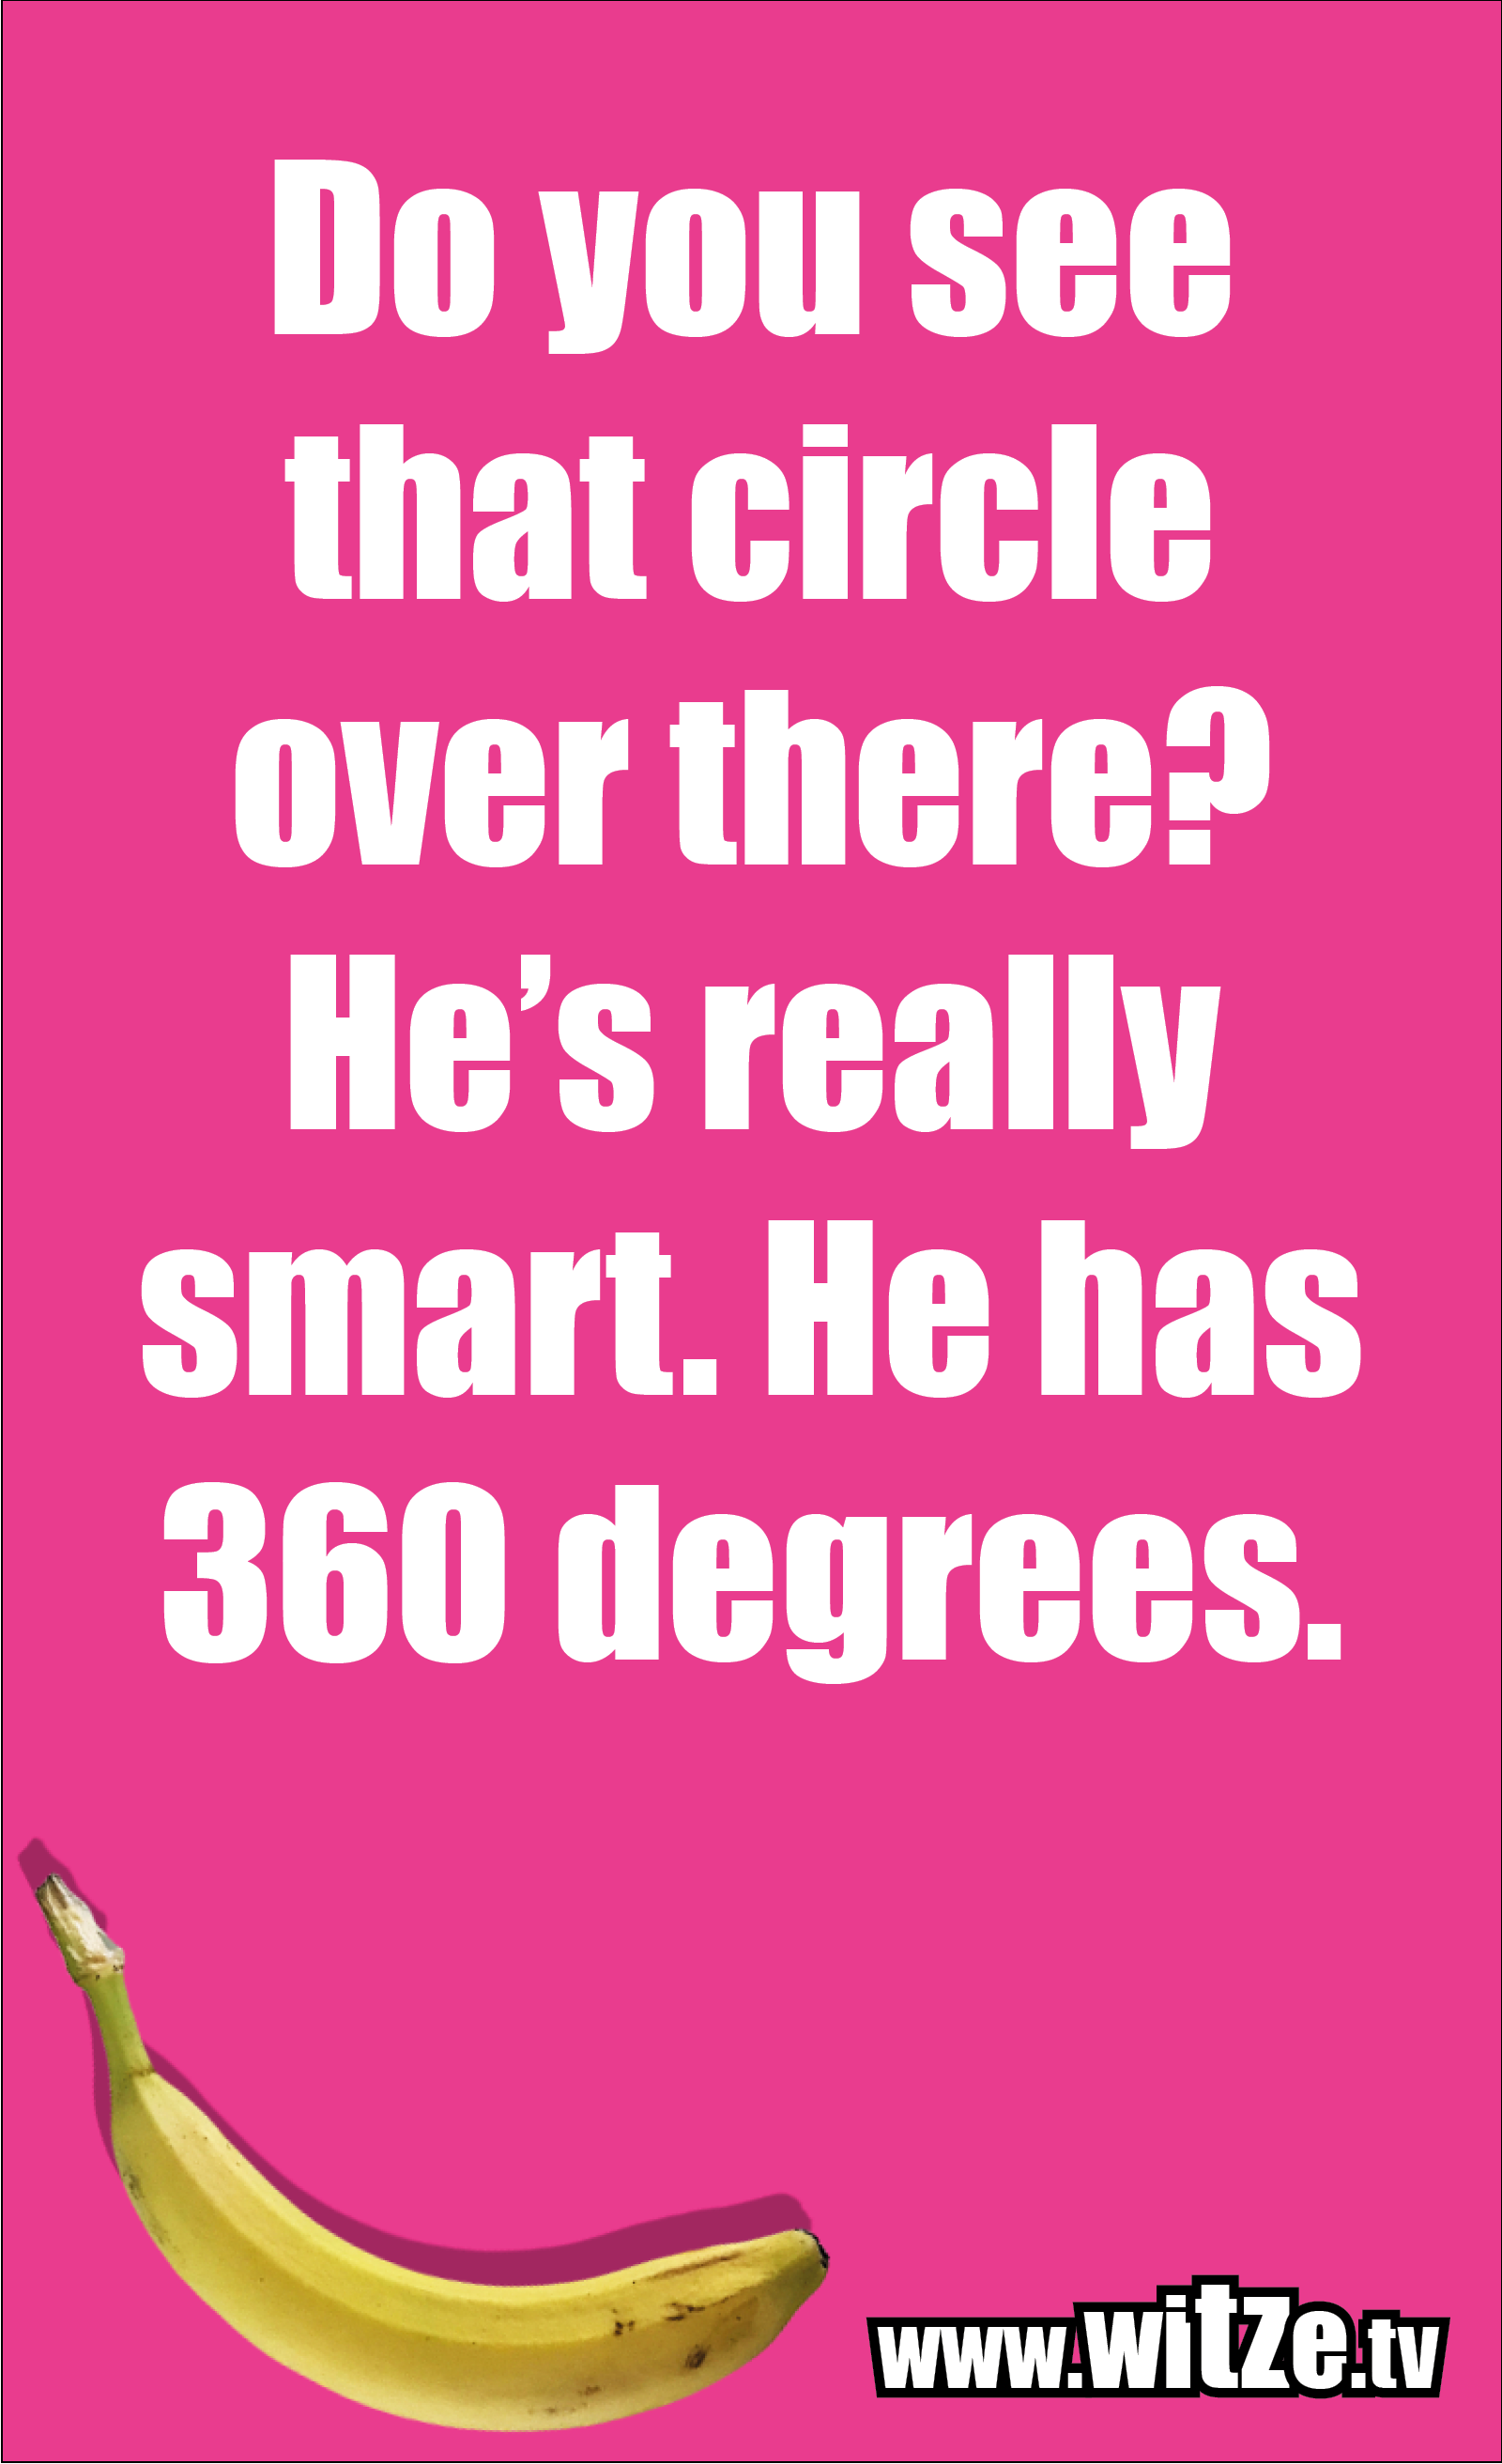 Math joke… Do you see that circle over there? He's really smart. He has 360 degrees.